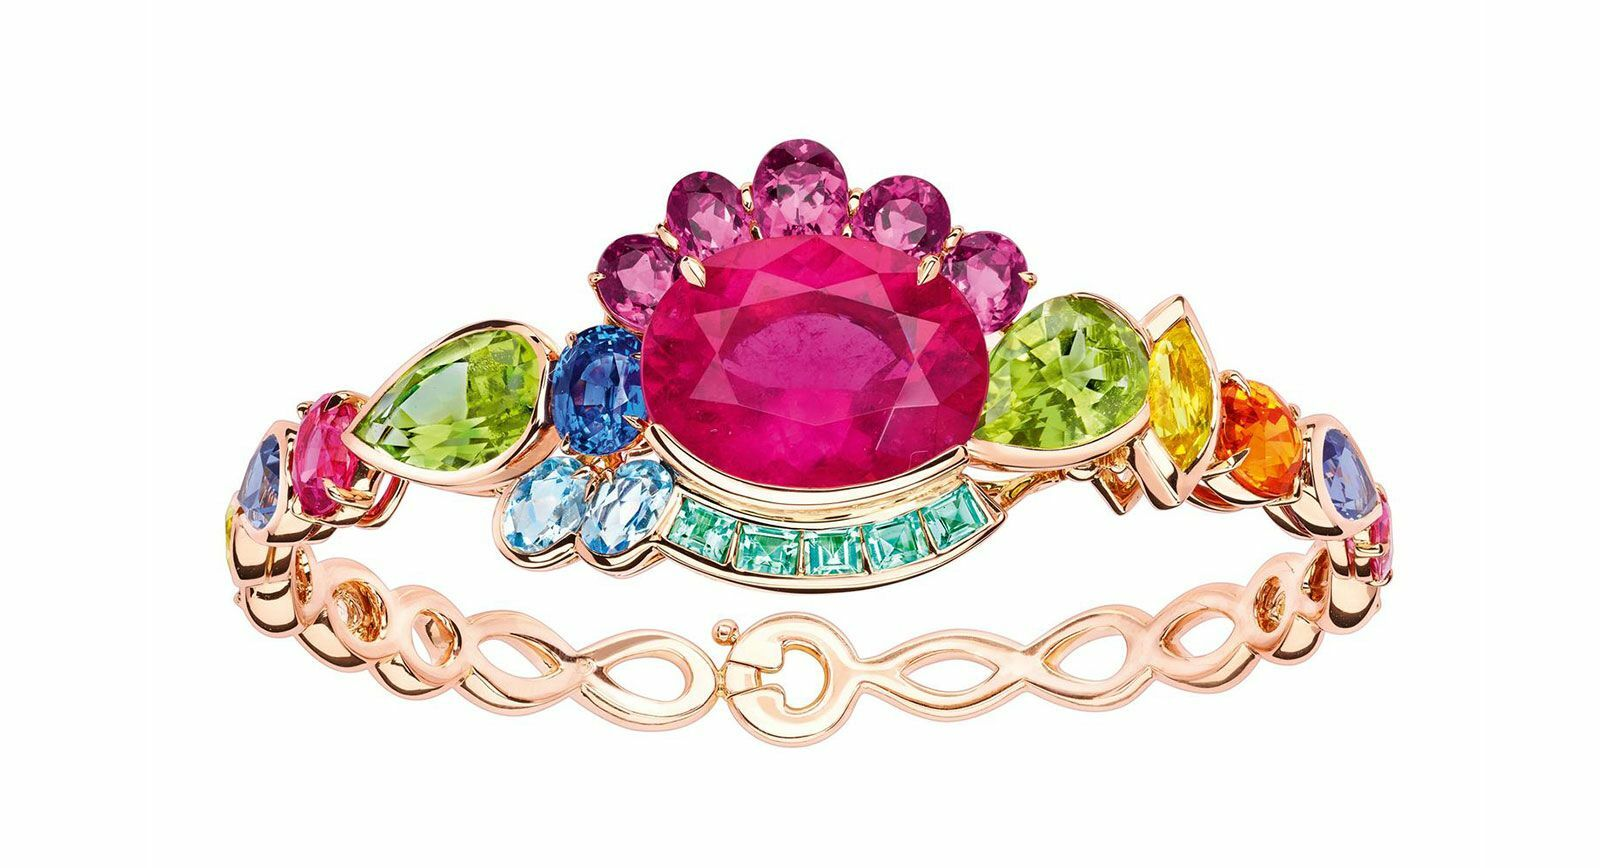 Granville – New Colourful Collection by Dior Joaillerie